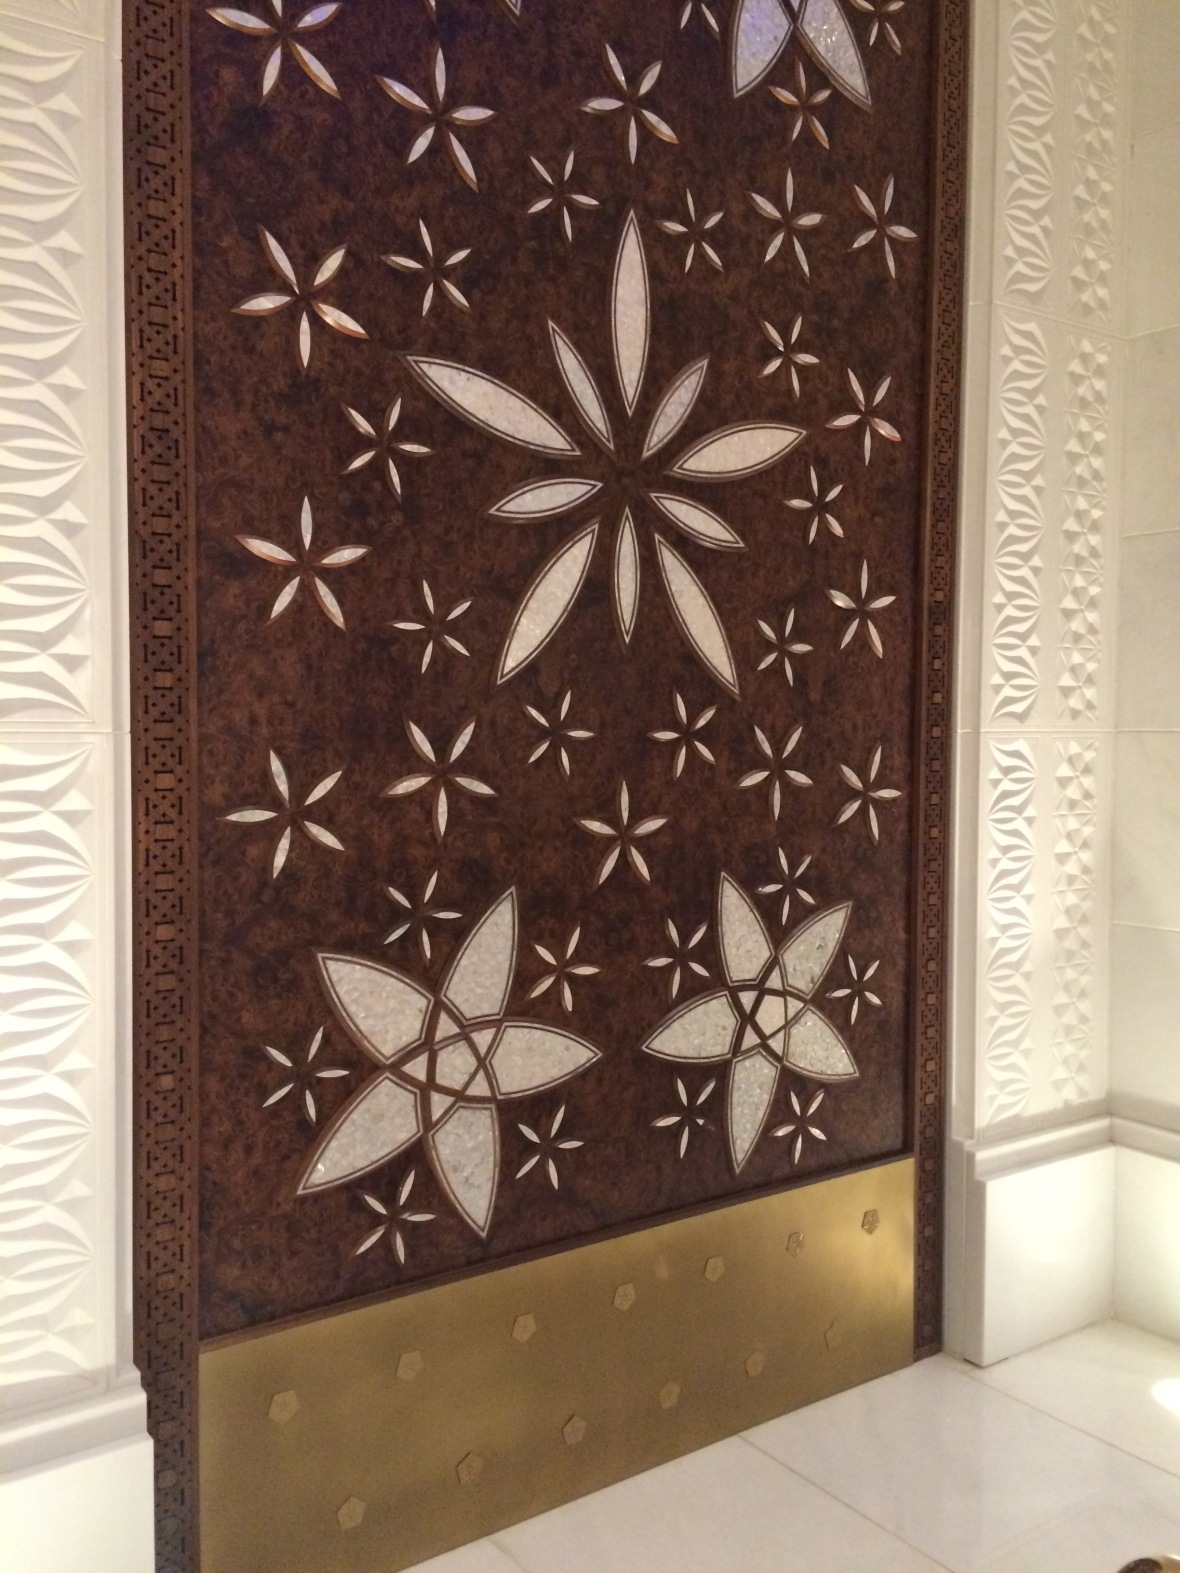 Wooden Doors, Sheikh Zayed Grand Mosque, Abu Dhabi, UAE